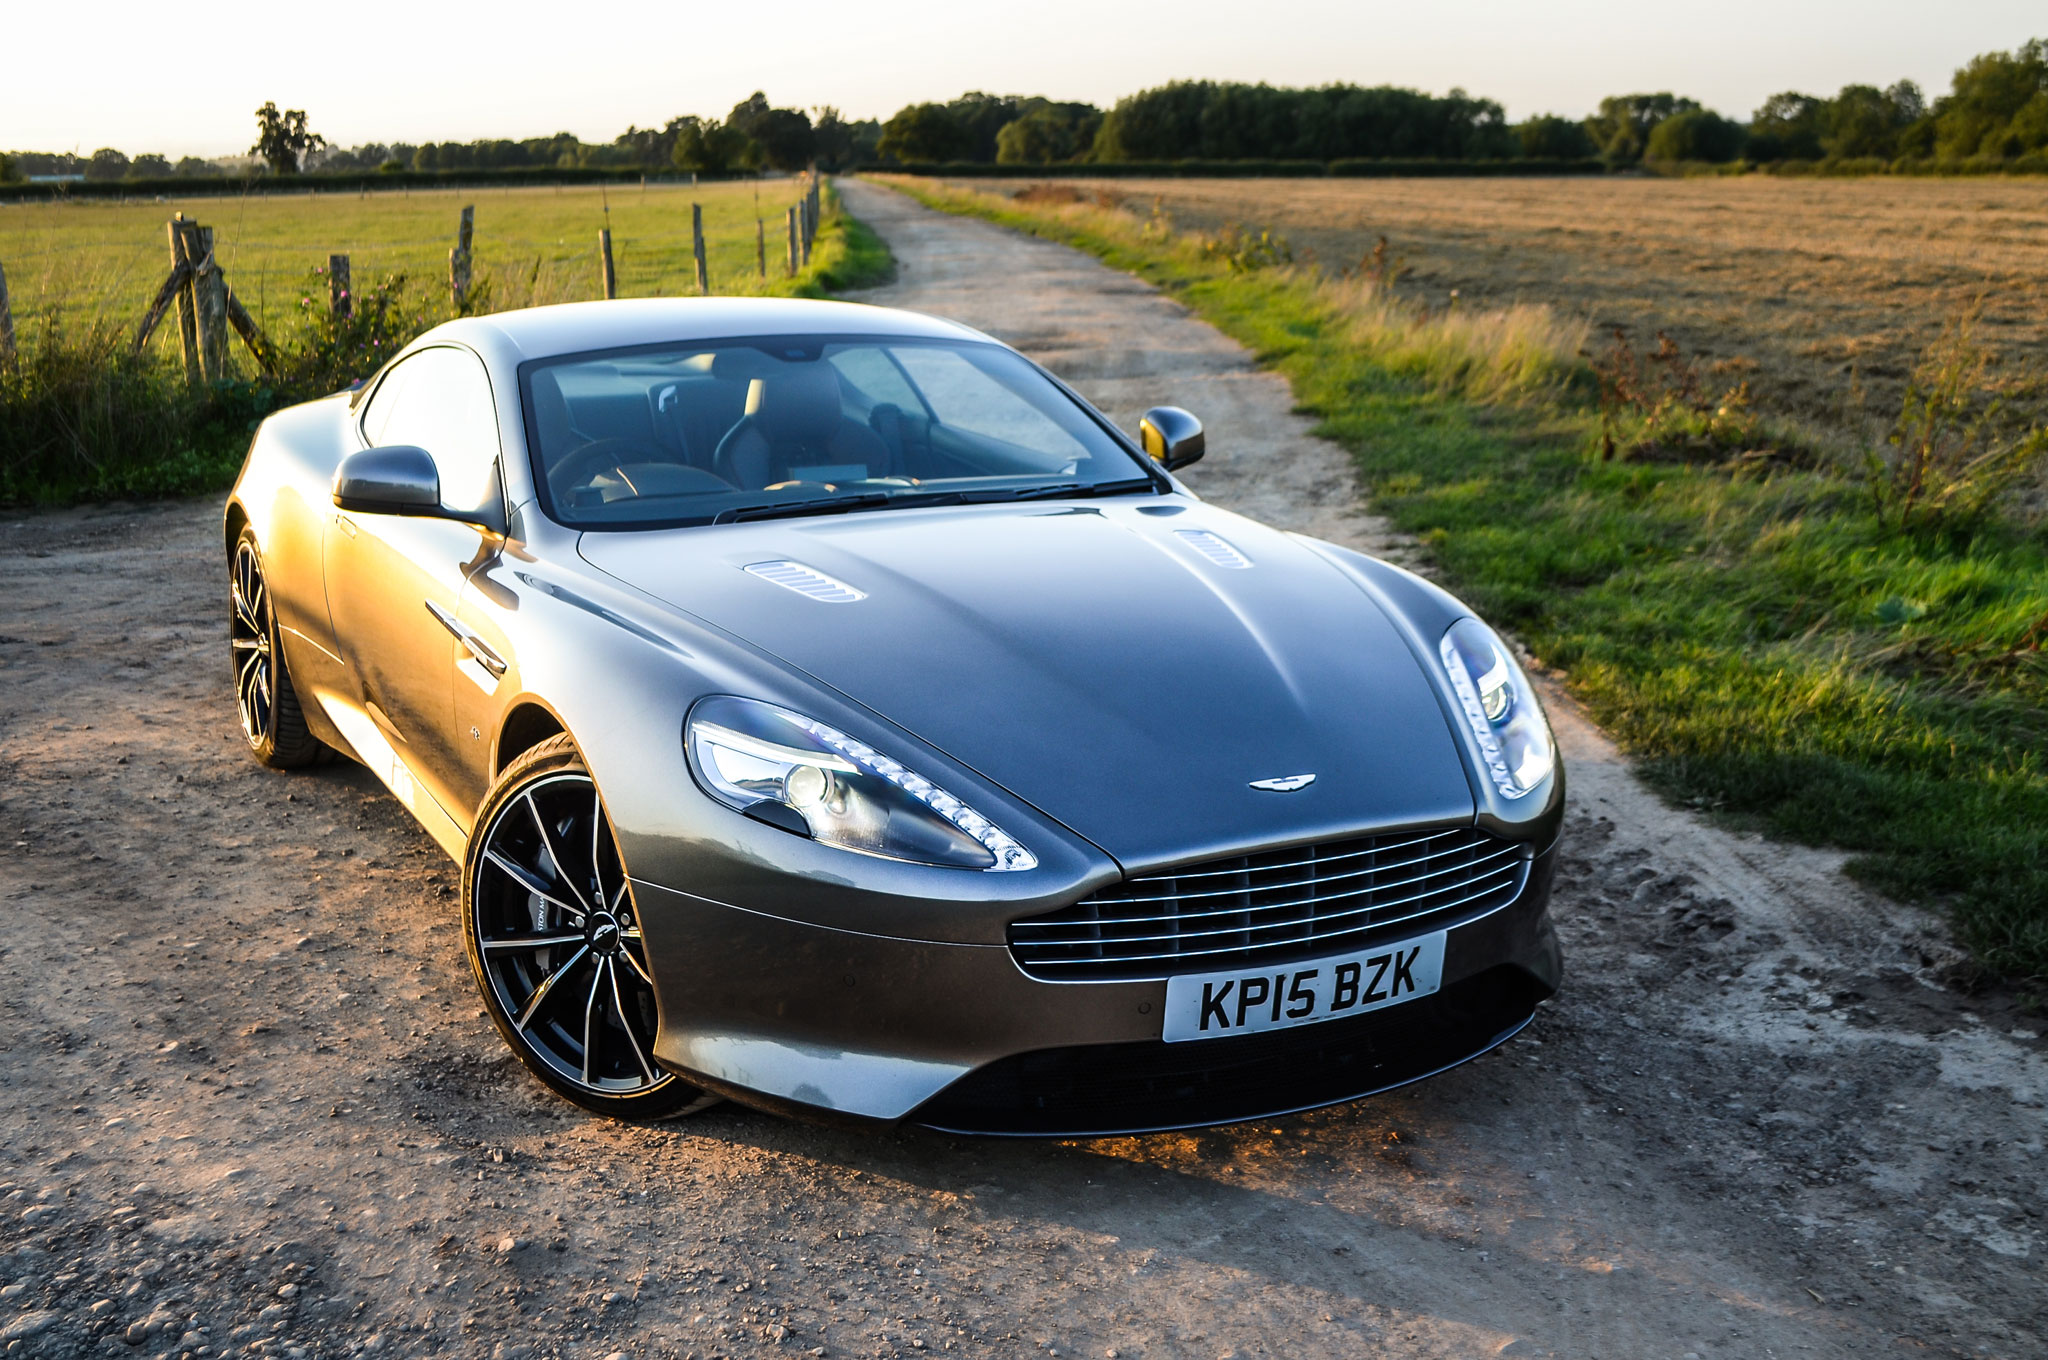 2016 aston martin db9 gt review. Black Bedroom Furniture Sets. Home Design Ideas